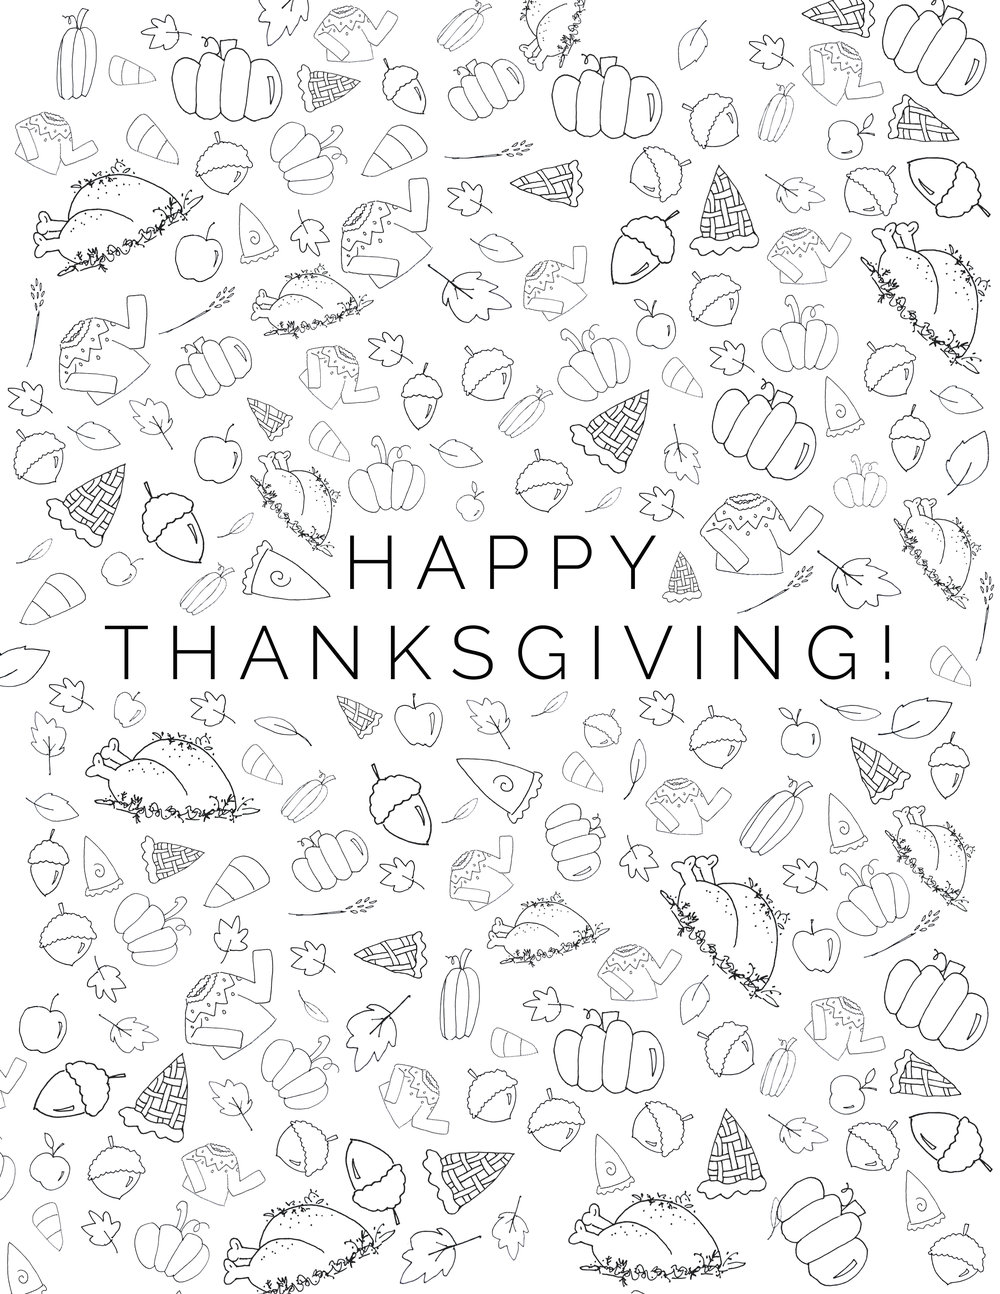 This cute, hand-drawn Thanksgiving coloring page is great for holiday events and parties for kids and adults!